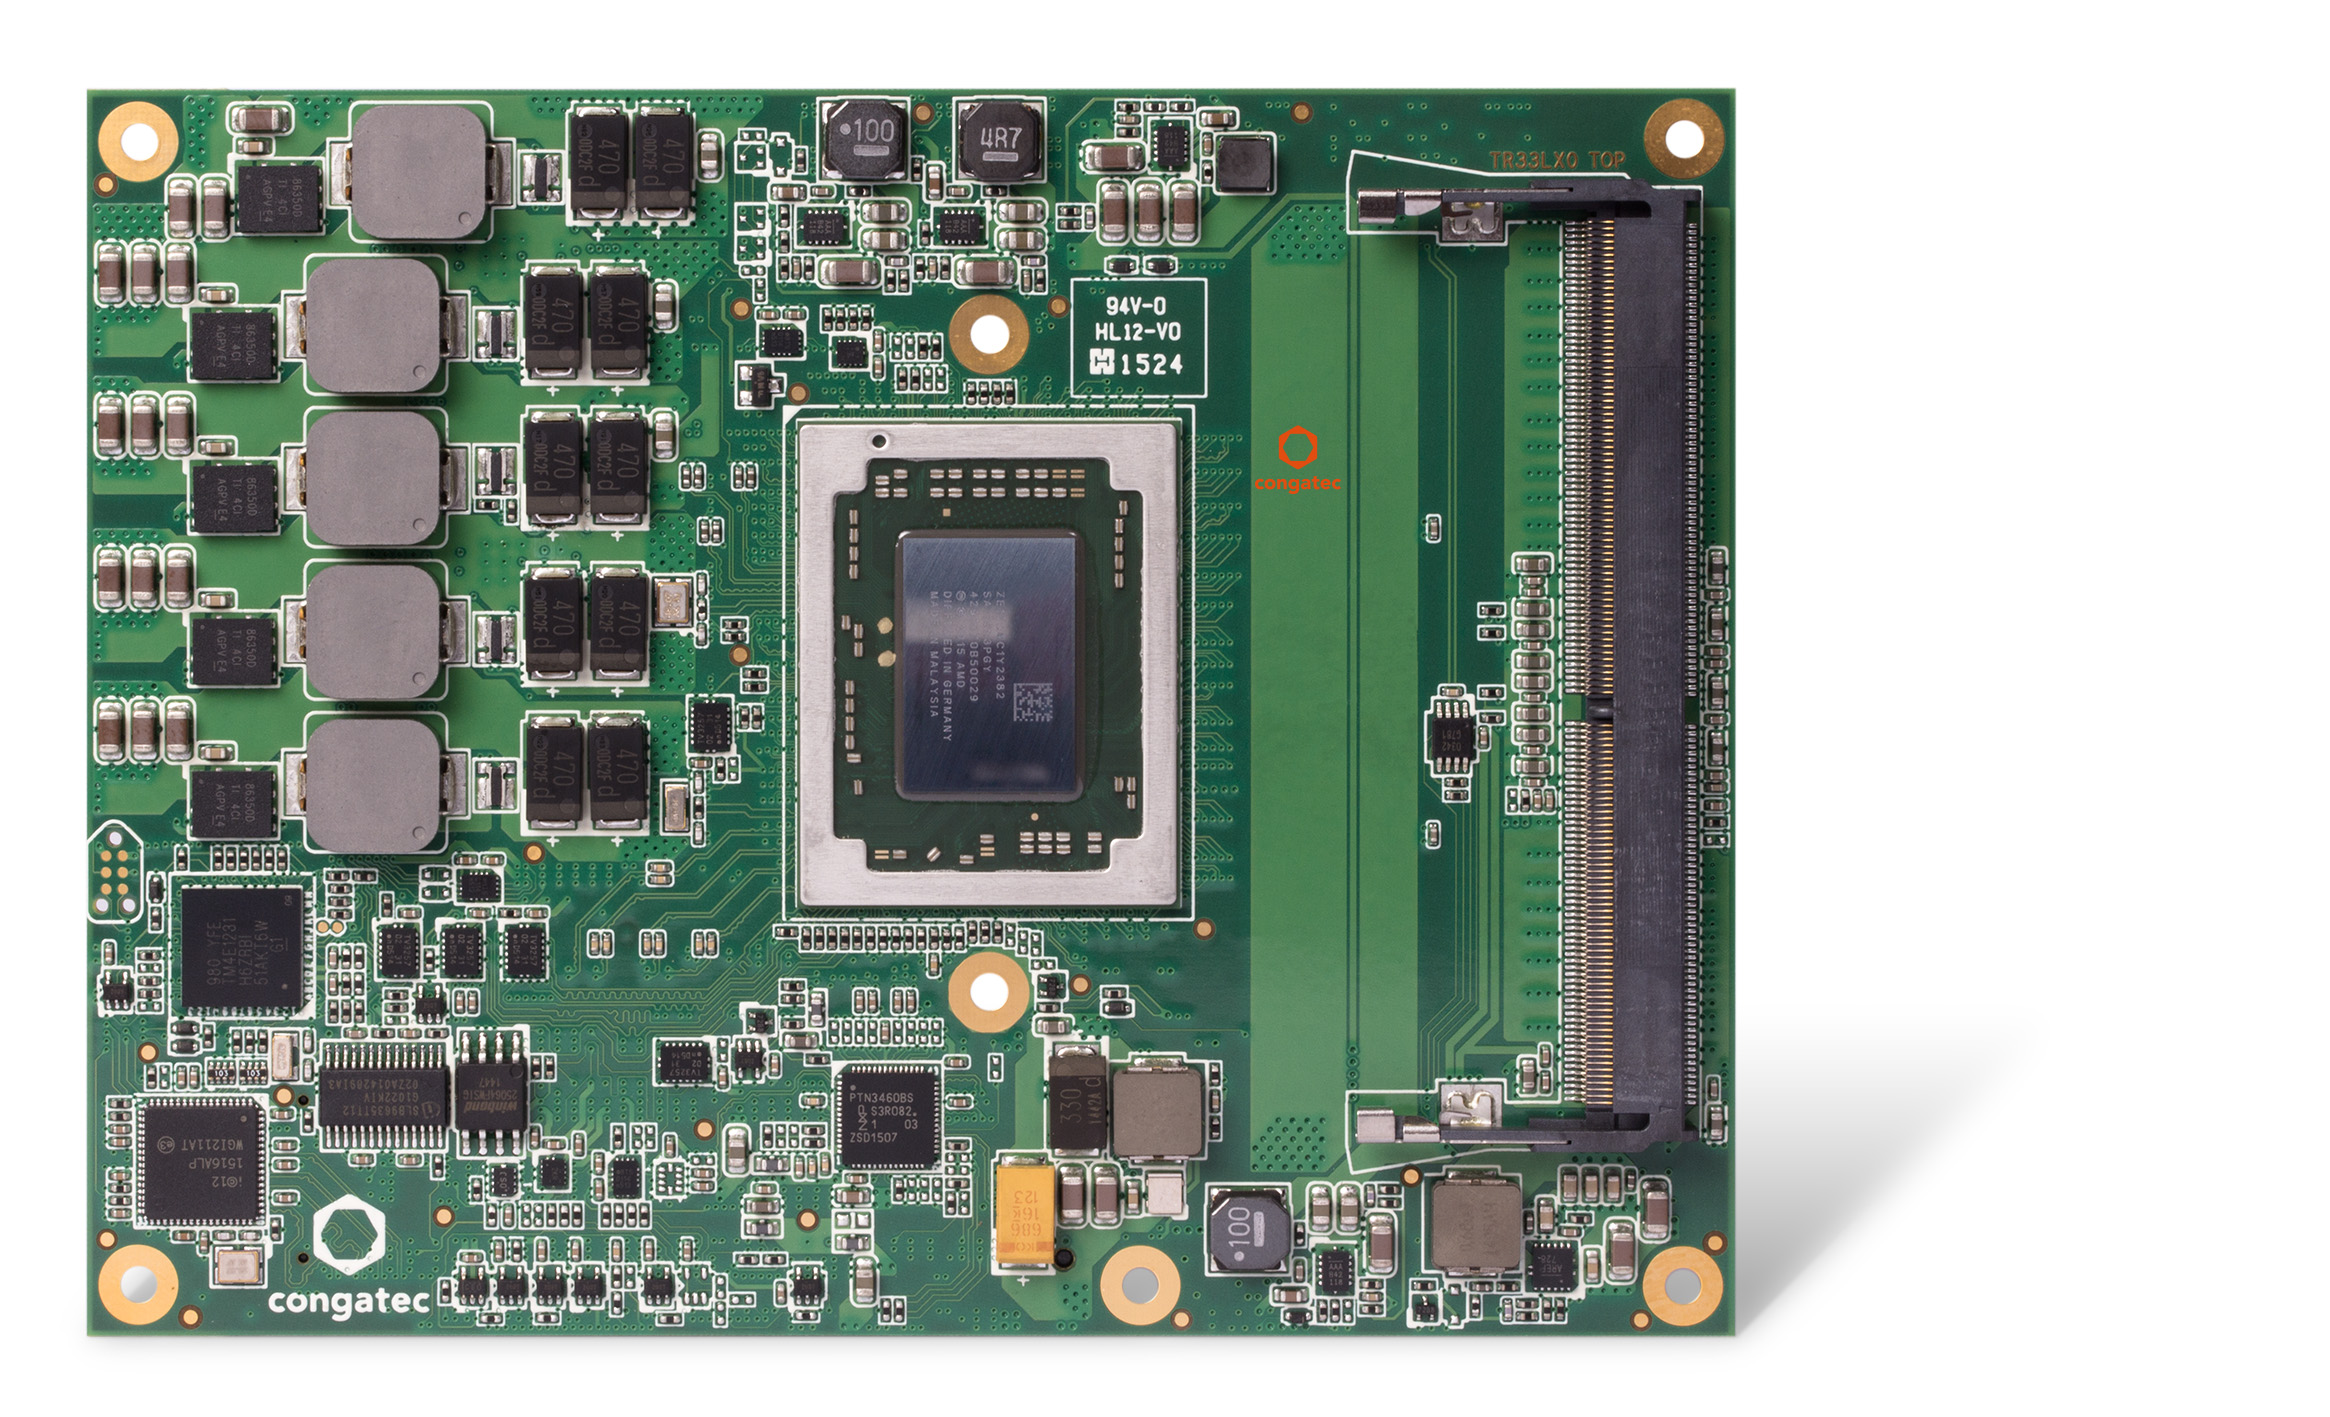 congates COM Express module TR3 with AMD G-series SoC